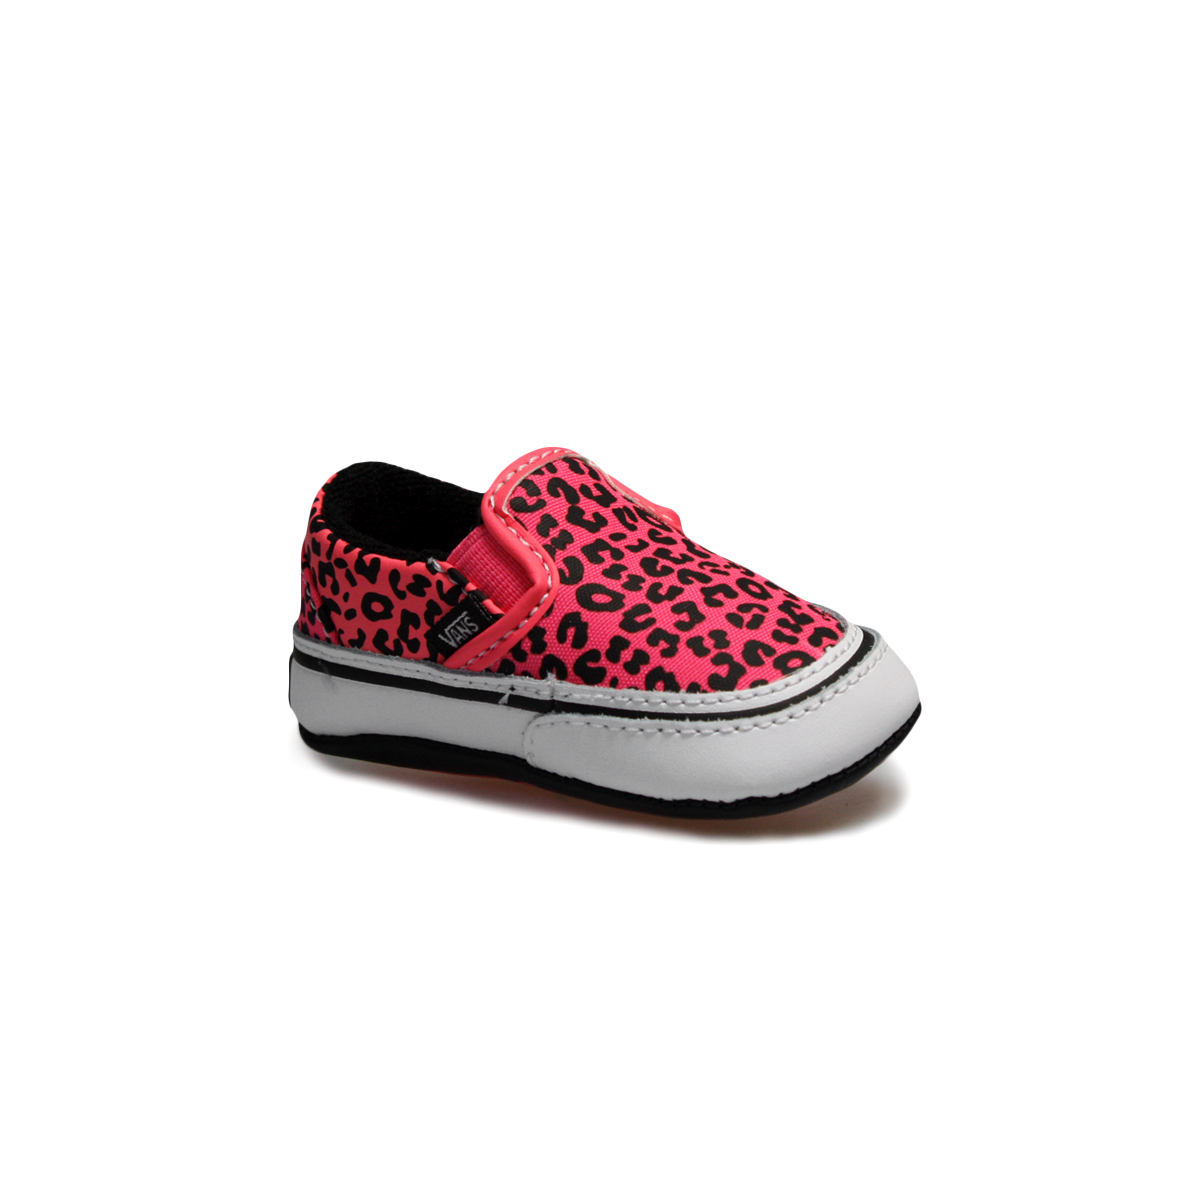 vans leopard pink classic slip on baby shoes sizes 0 5 3 5